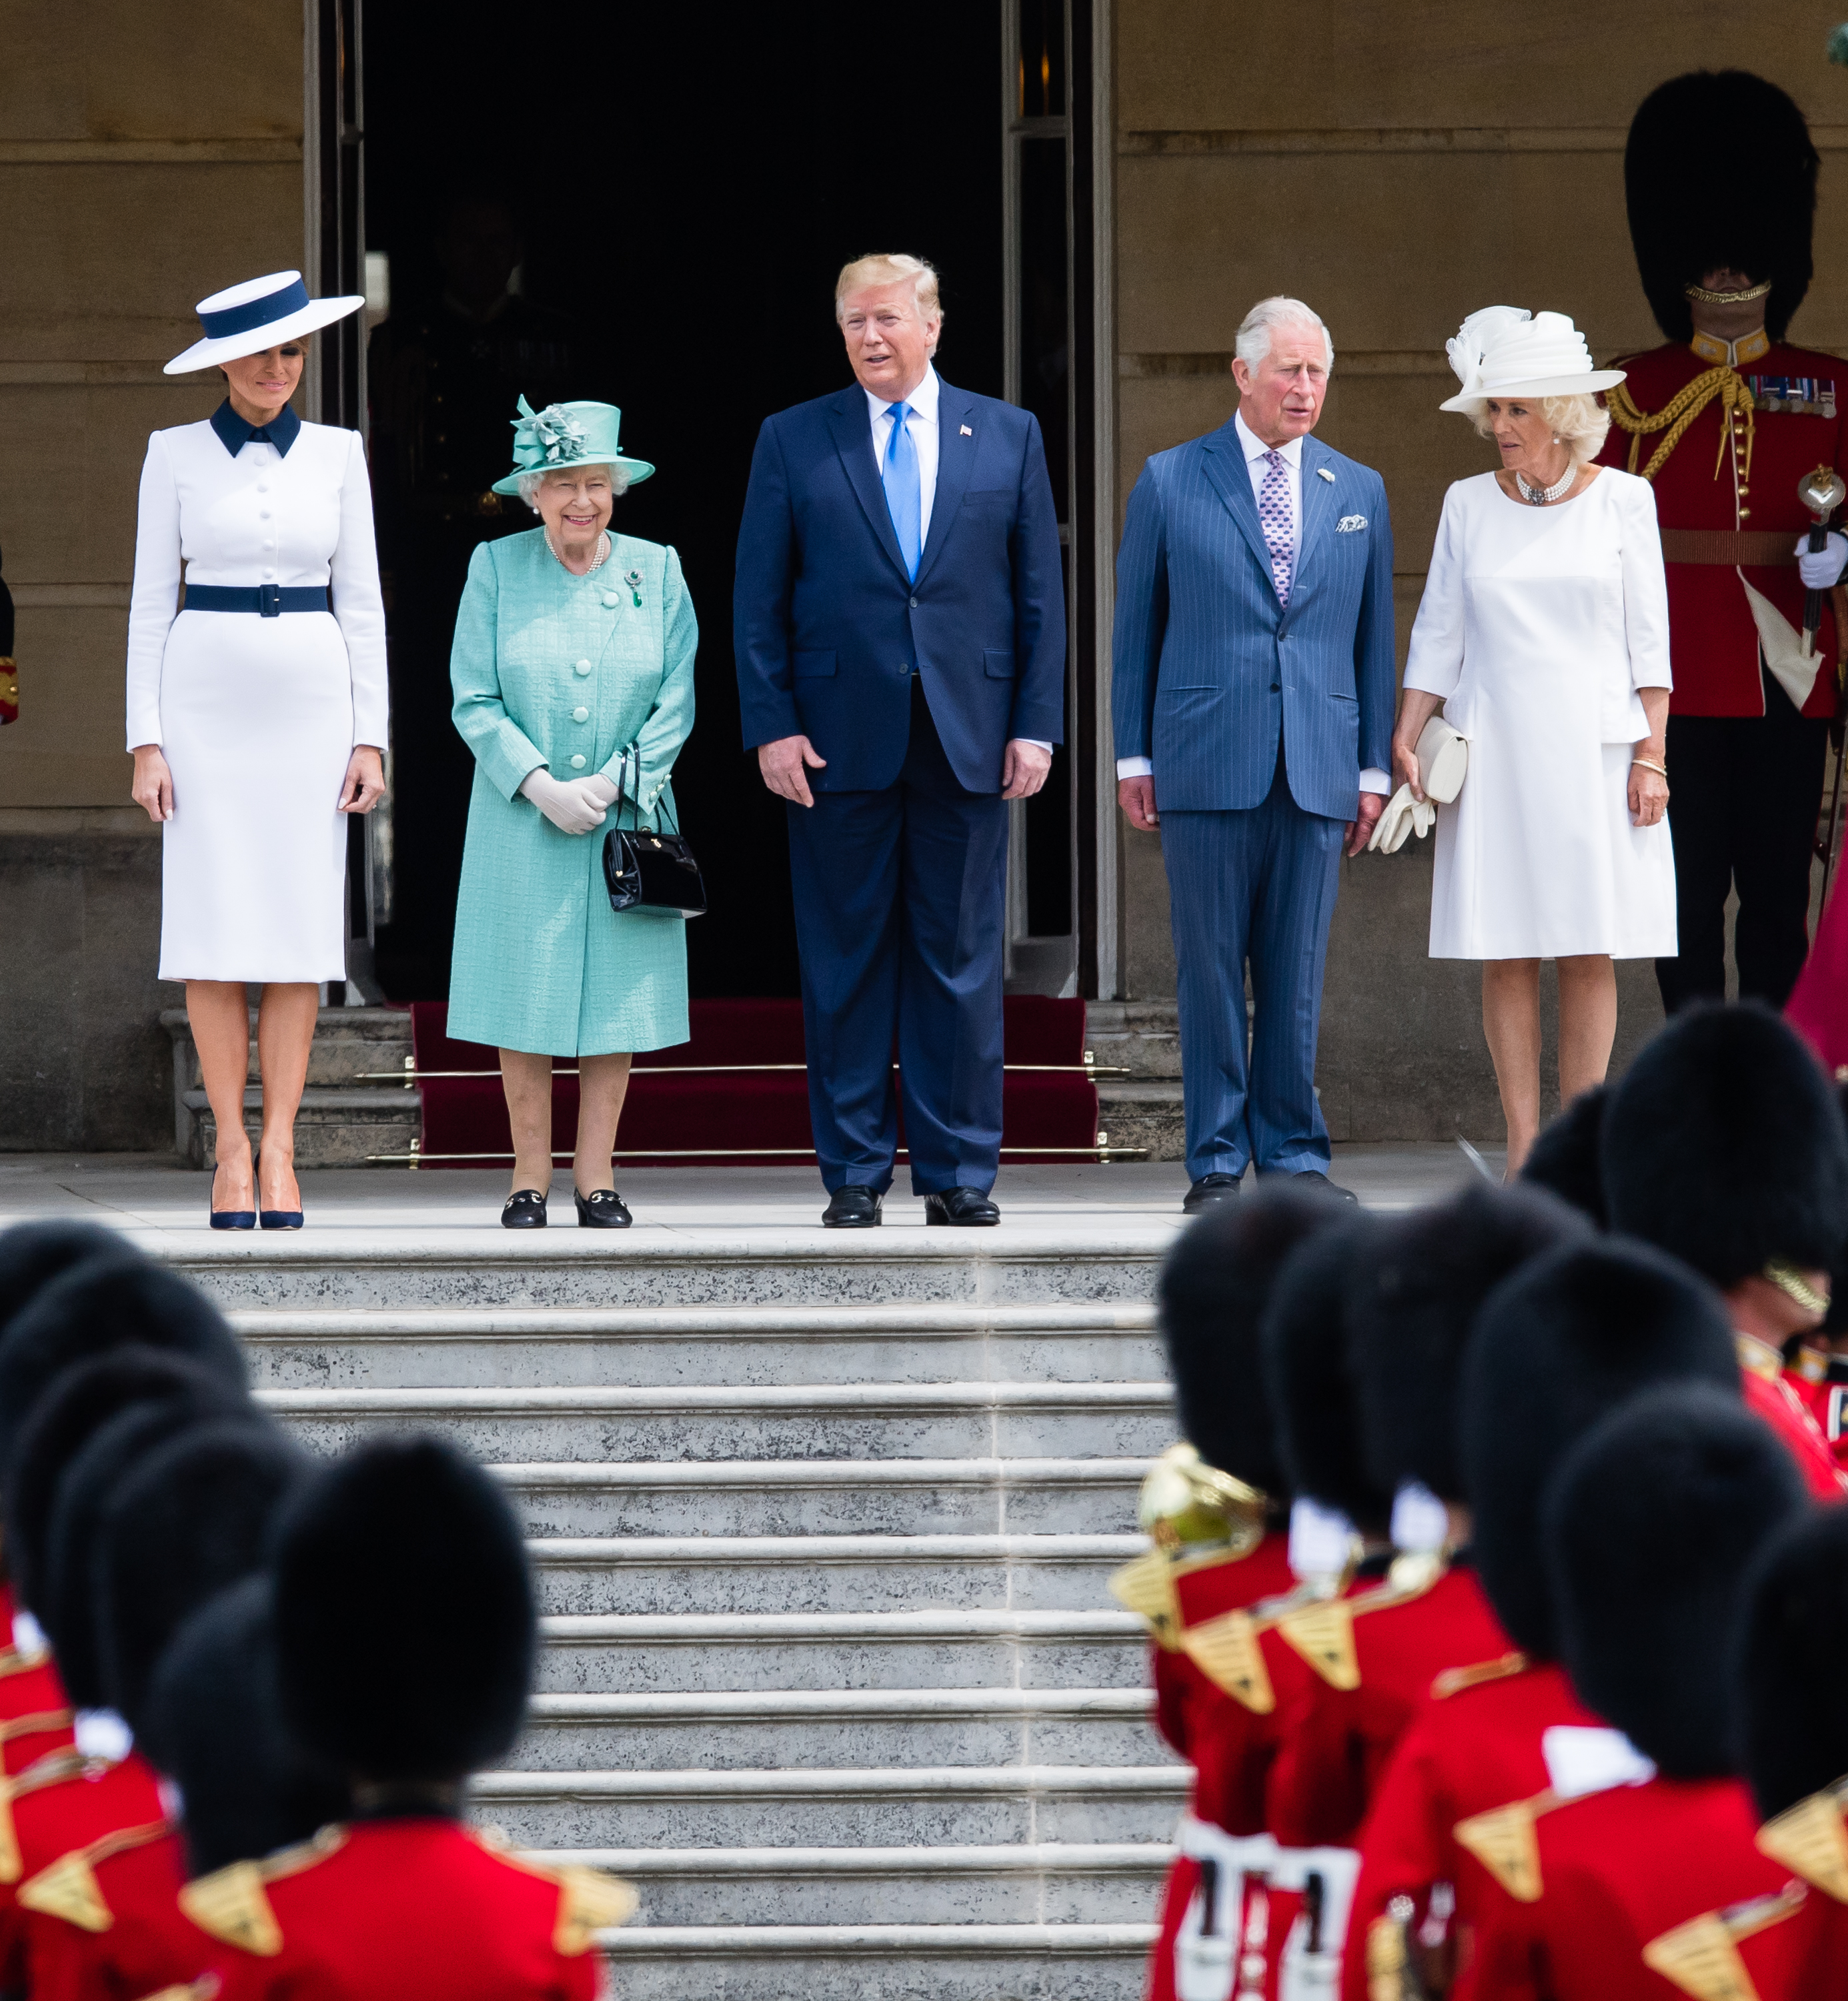 LONDON, ENGLAND - JUNE 03:  Queen Elizabeth II (second left) officially welcomes US President Donald Trump (C) and First Lady Melania Trump (L) with Prince Charles, Prince of Wales and Camilla, Duchess of Cornwall (R) at a Ceremonial Welcome at Buckingham Palace on June 03, 2019 in London, England. (Photo by Samir Hussein/Samir Hussein/WireImage)